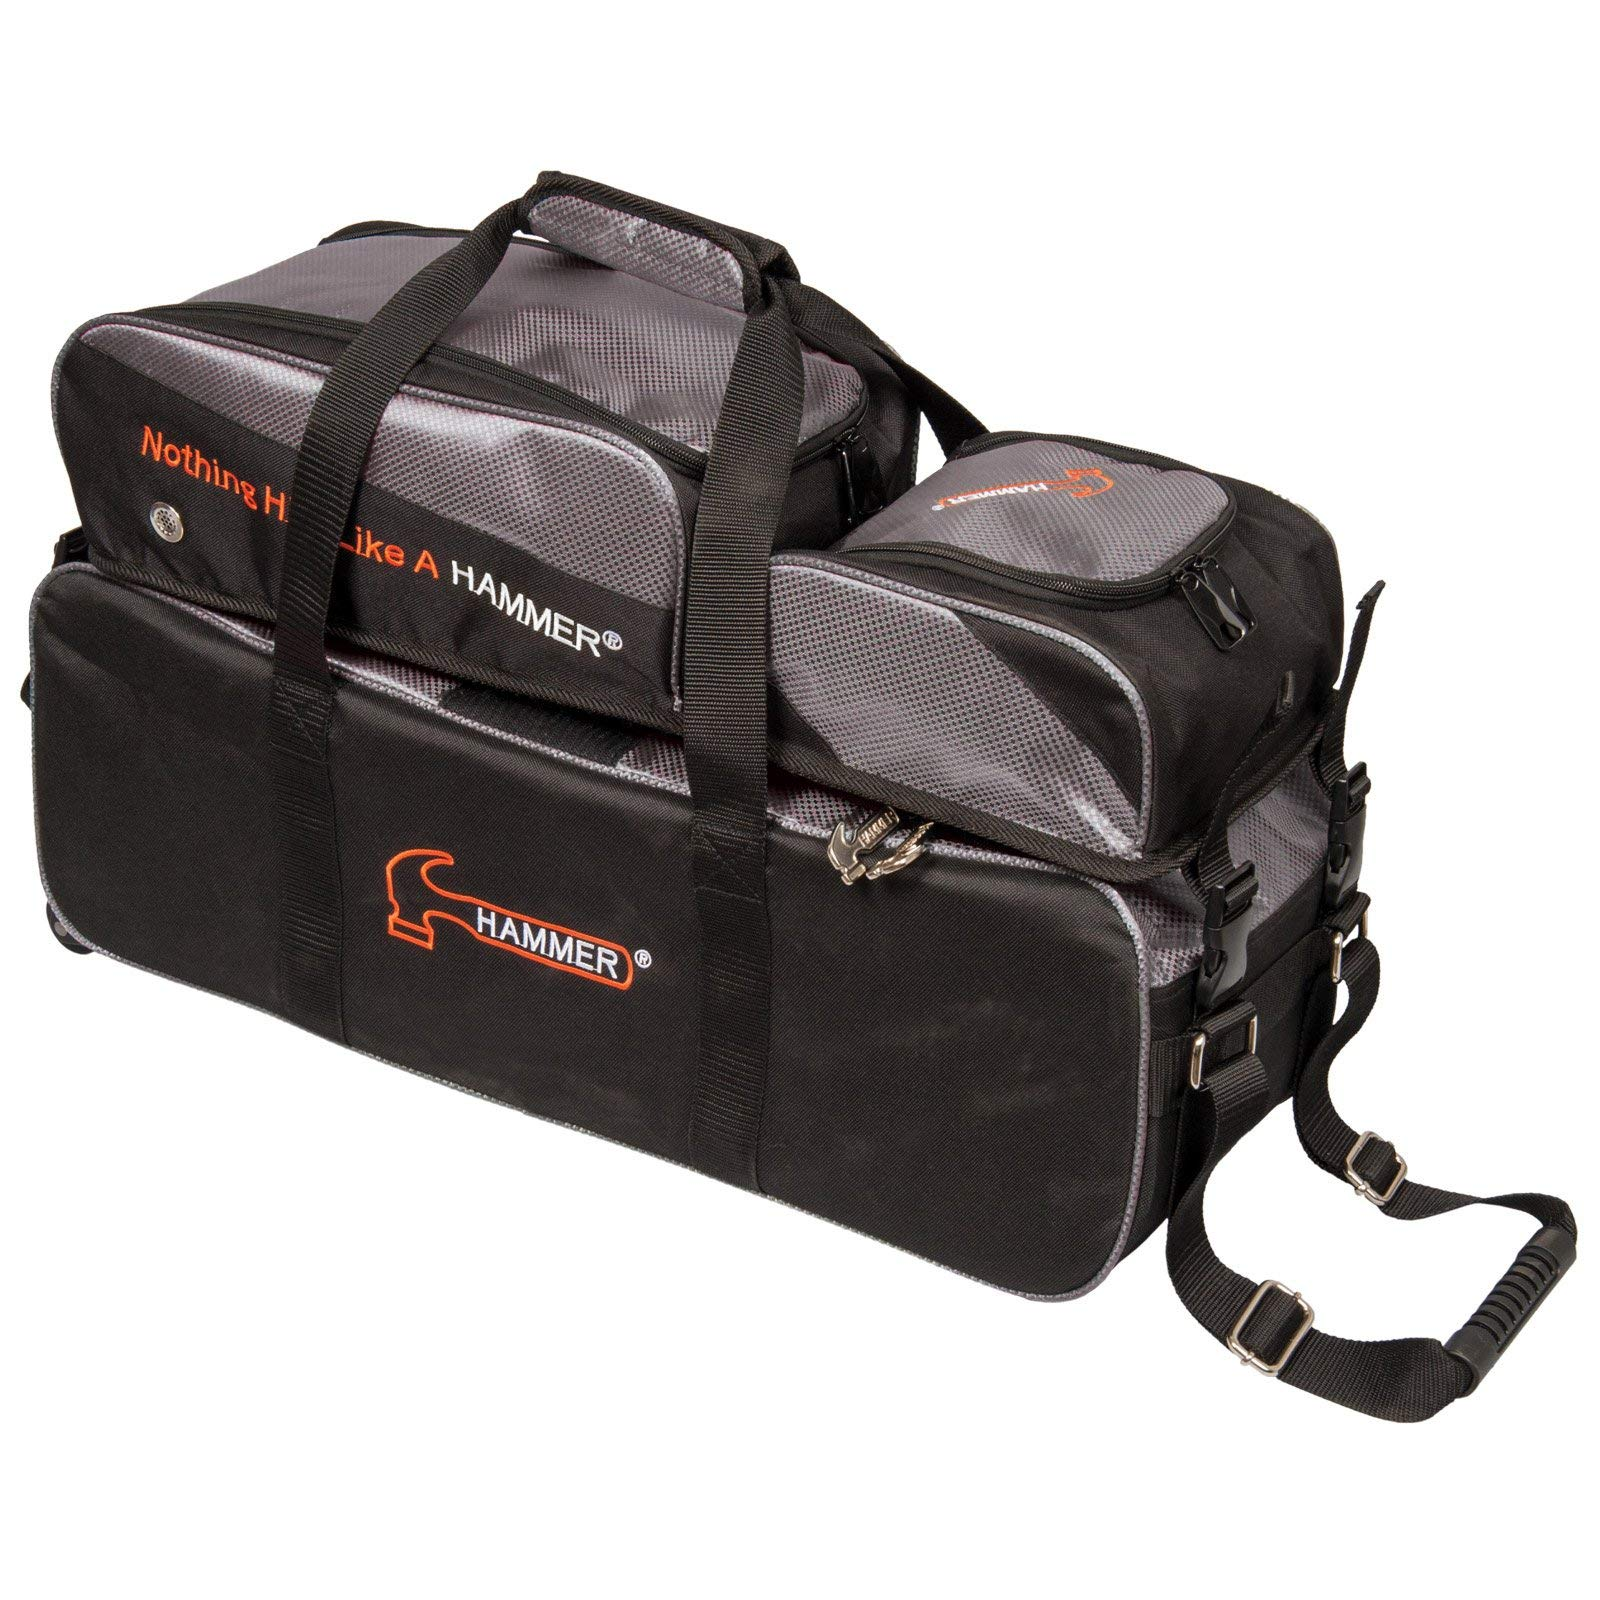 Hammer Premium Deluxe Triple Tote with Removable Pouch Bowling Bag, Black/Carbon